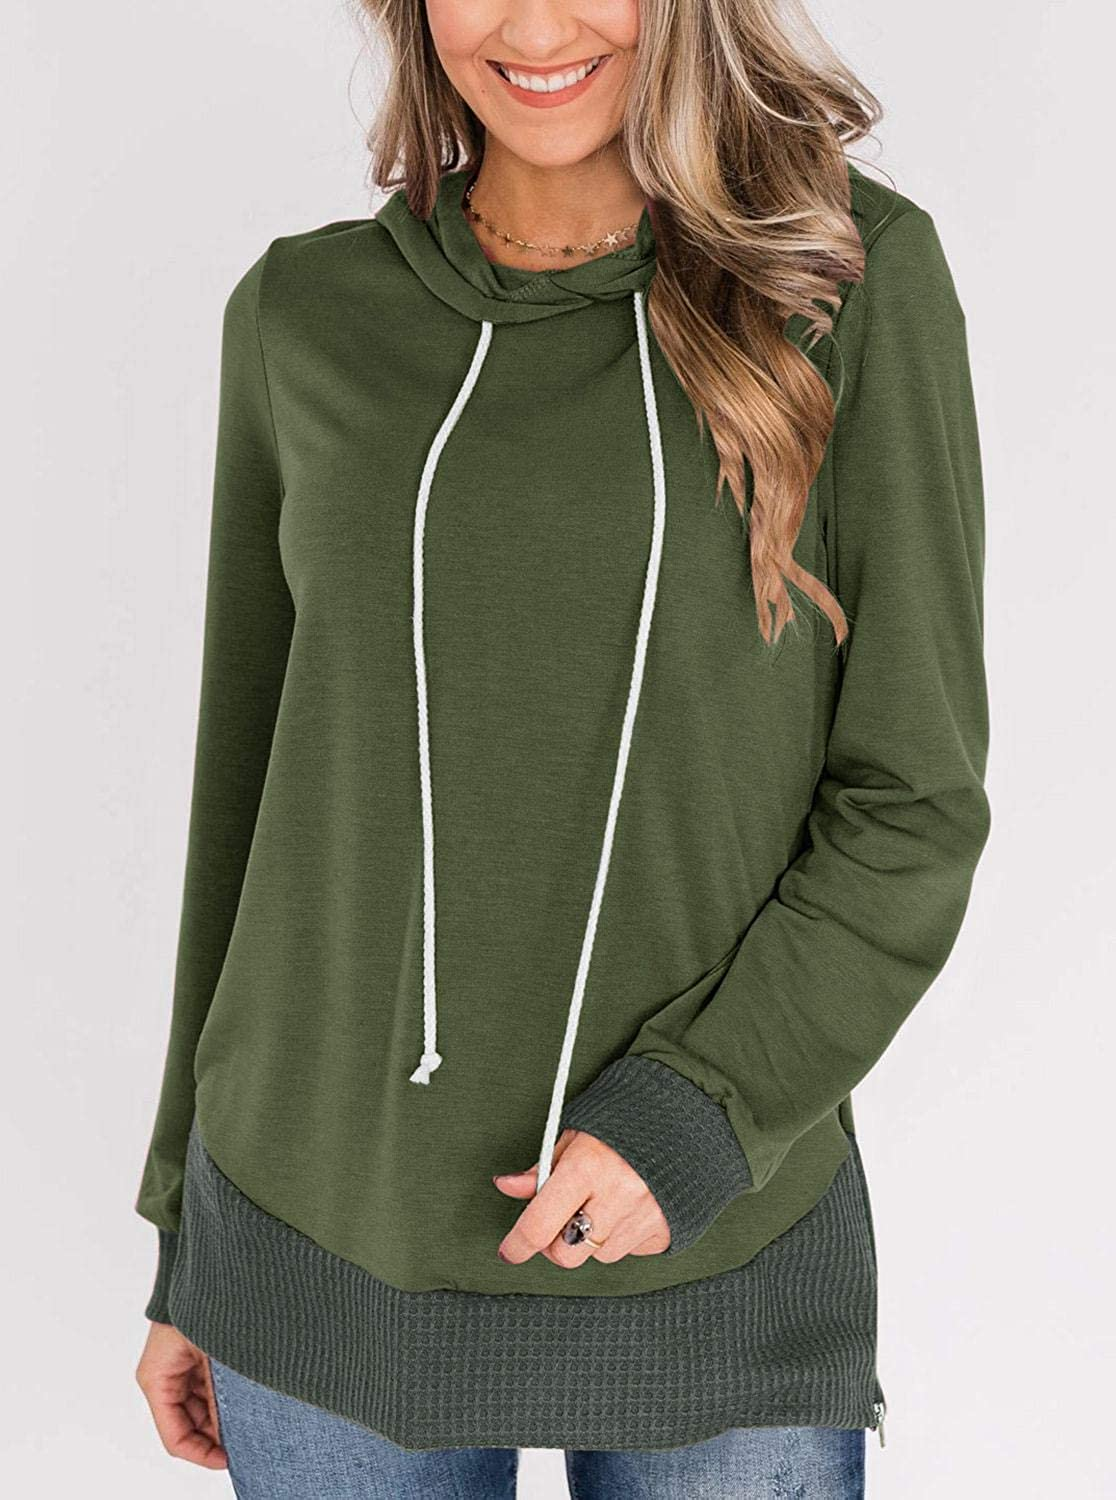 PINKMSTYLE Womens Color Block Hoodie Sweatshirts Tunic Pullover Tops Long Sleeve Drawstring Shirts